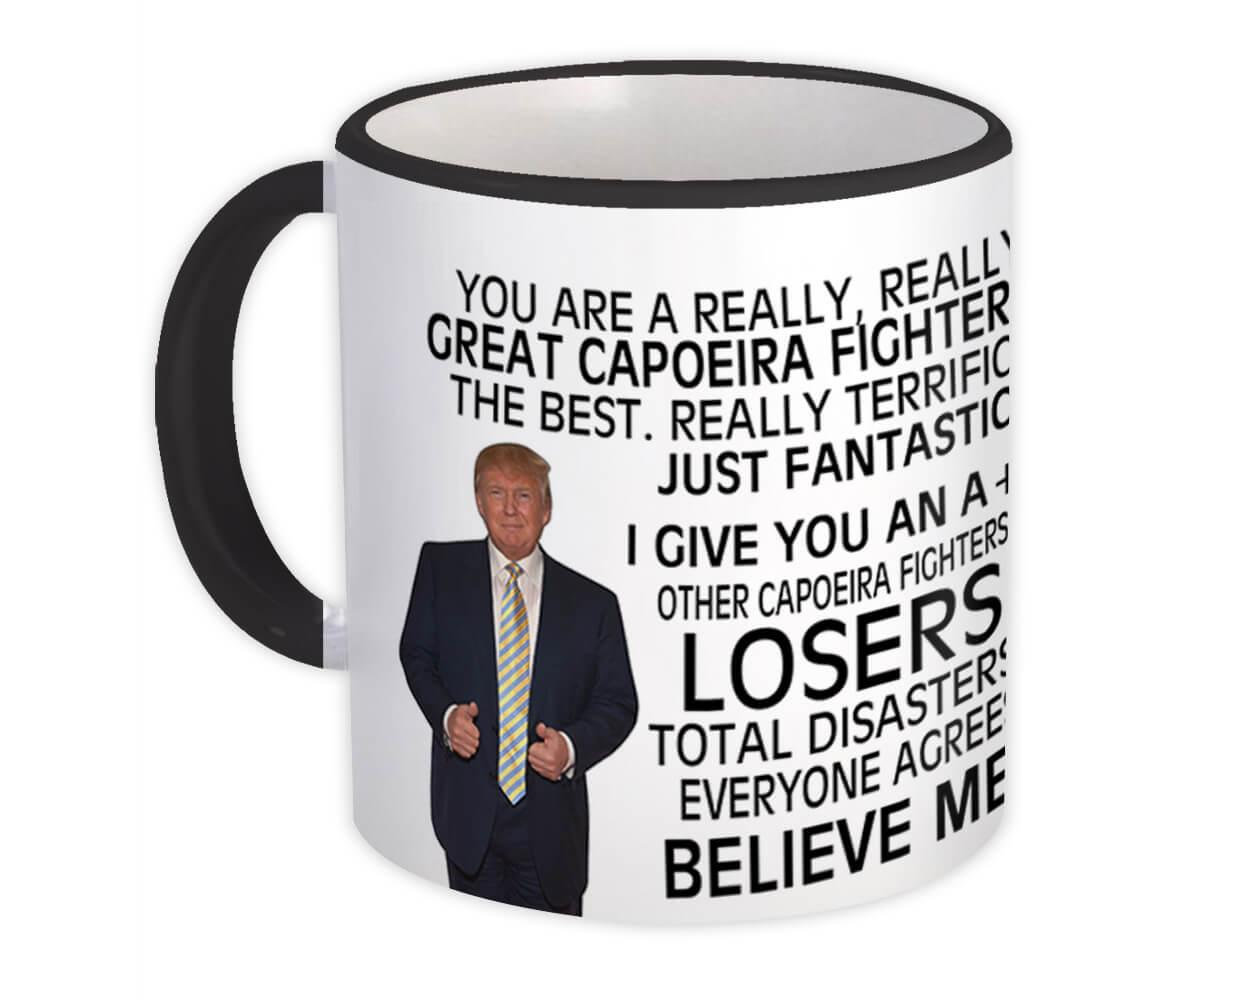 Gift for Capoeira Fighter : Gift Mug Donald Trump Great Capoeira Fighter Funny Christmas